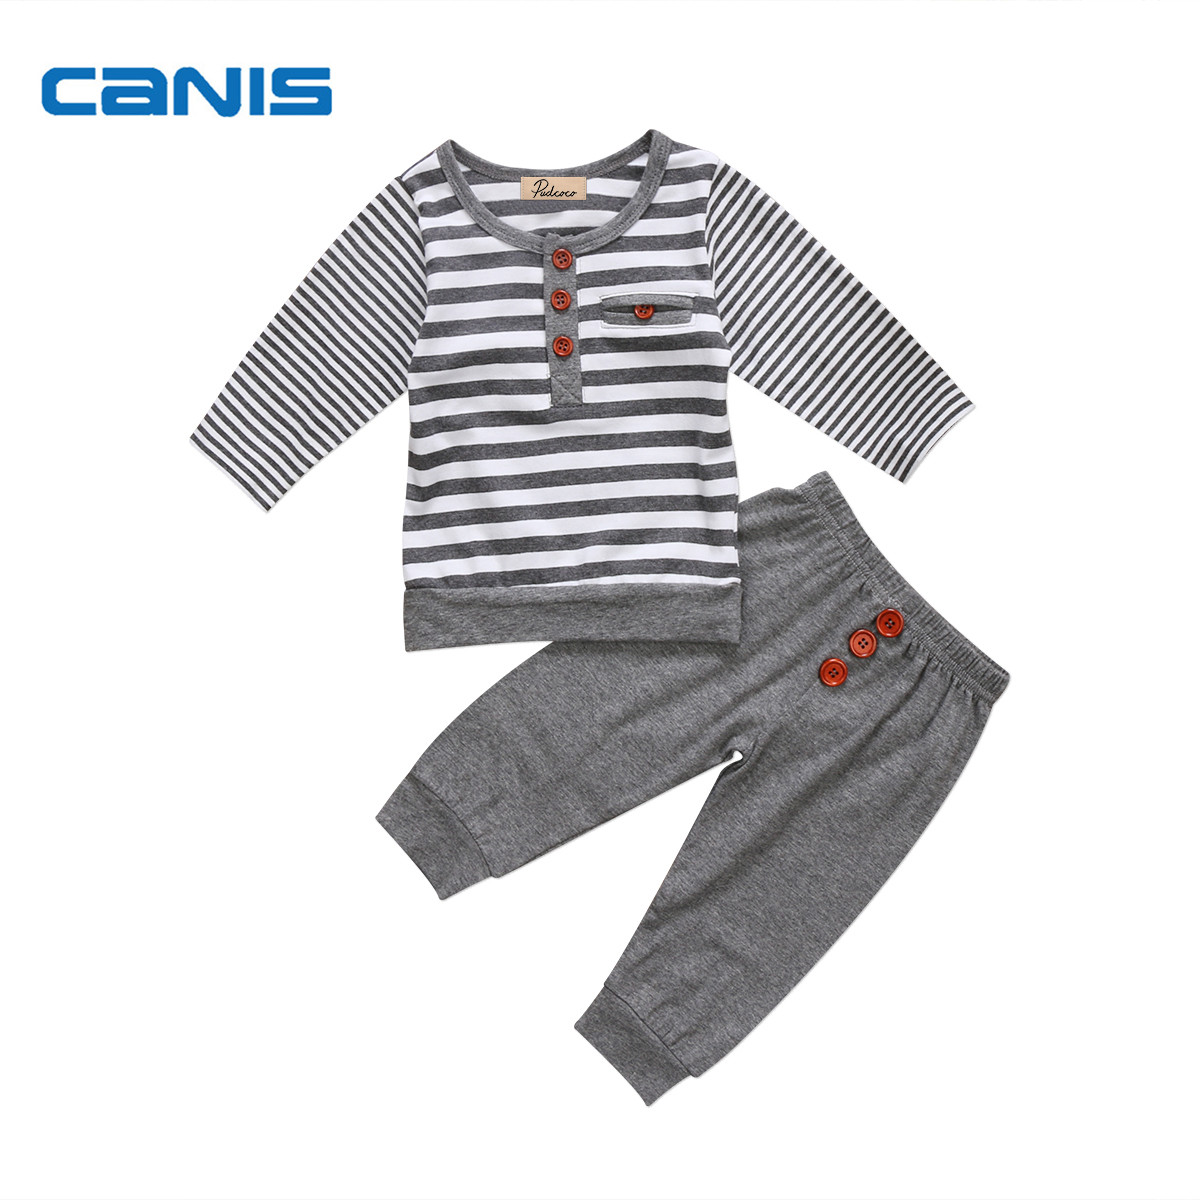 2017 Brand New Newborn Toddler Kids Baby Boy Girl Infant Cotton Clothes Long Sleeve Top T Shirt Pants Striped Outfit 2Pcs Sets t shirt tops cotton denim pants 2pcs clothes sets newborn toddler kid infant baby boy clothes outfit set au 2016 new boys